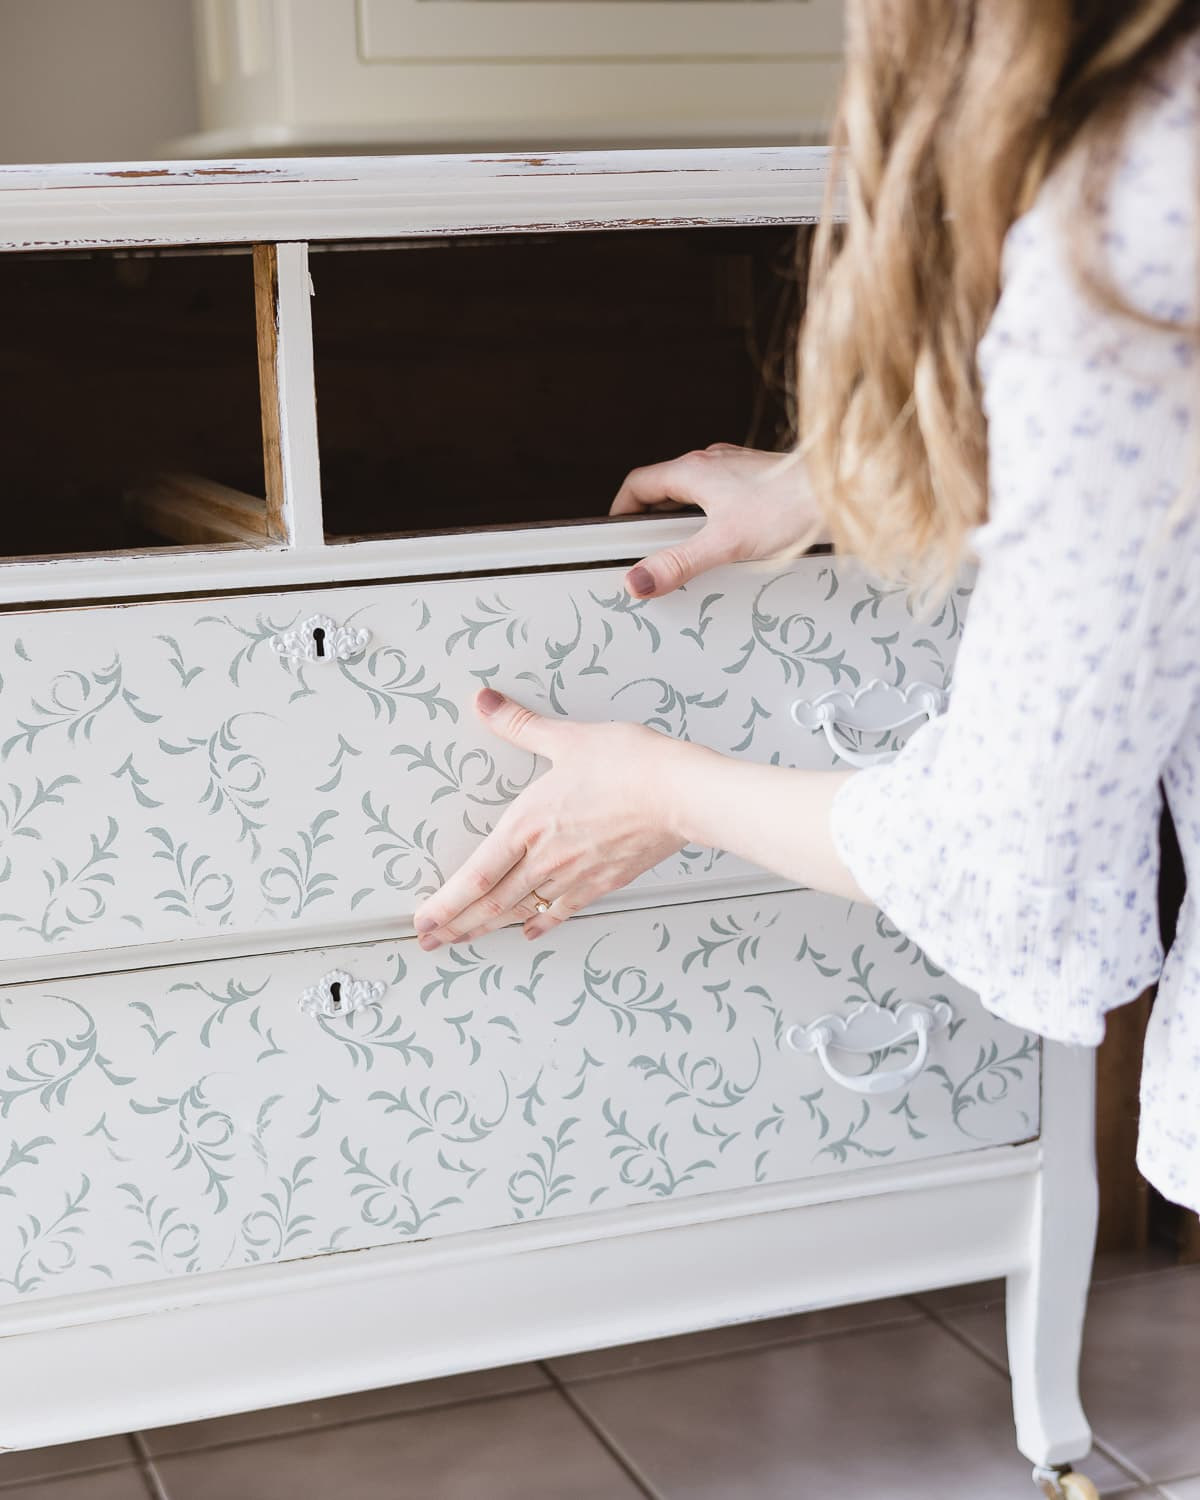 Inserting a drawer back into a painted dresser.